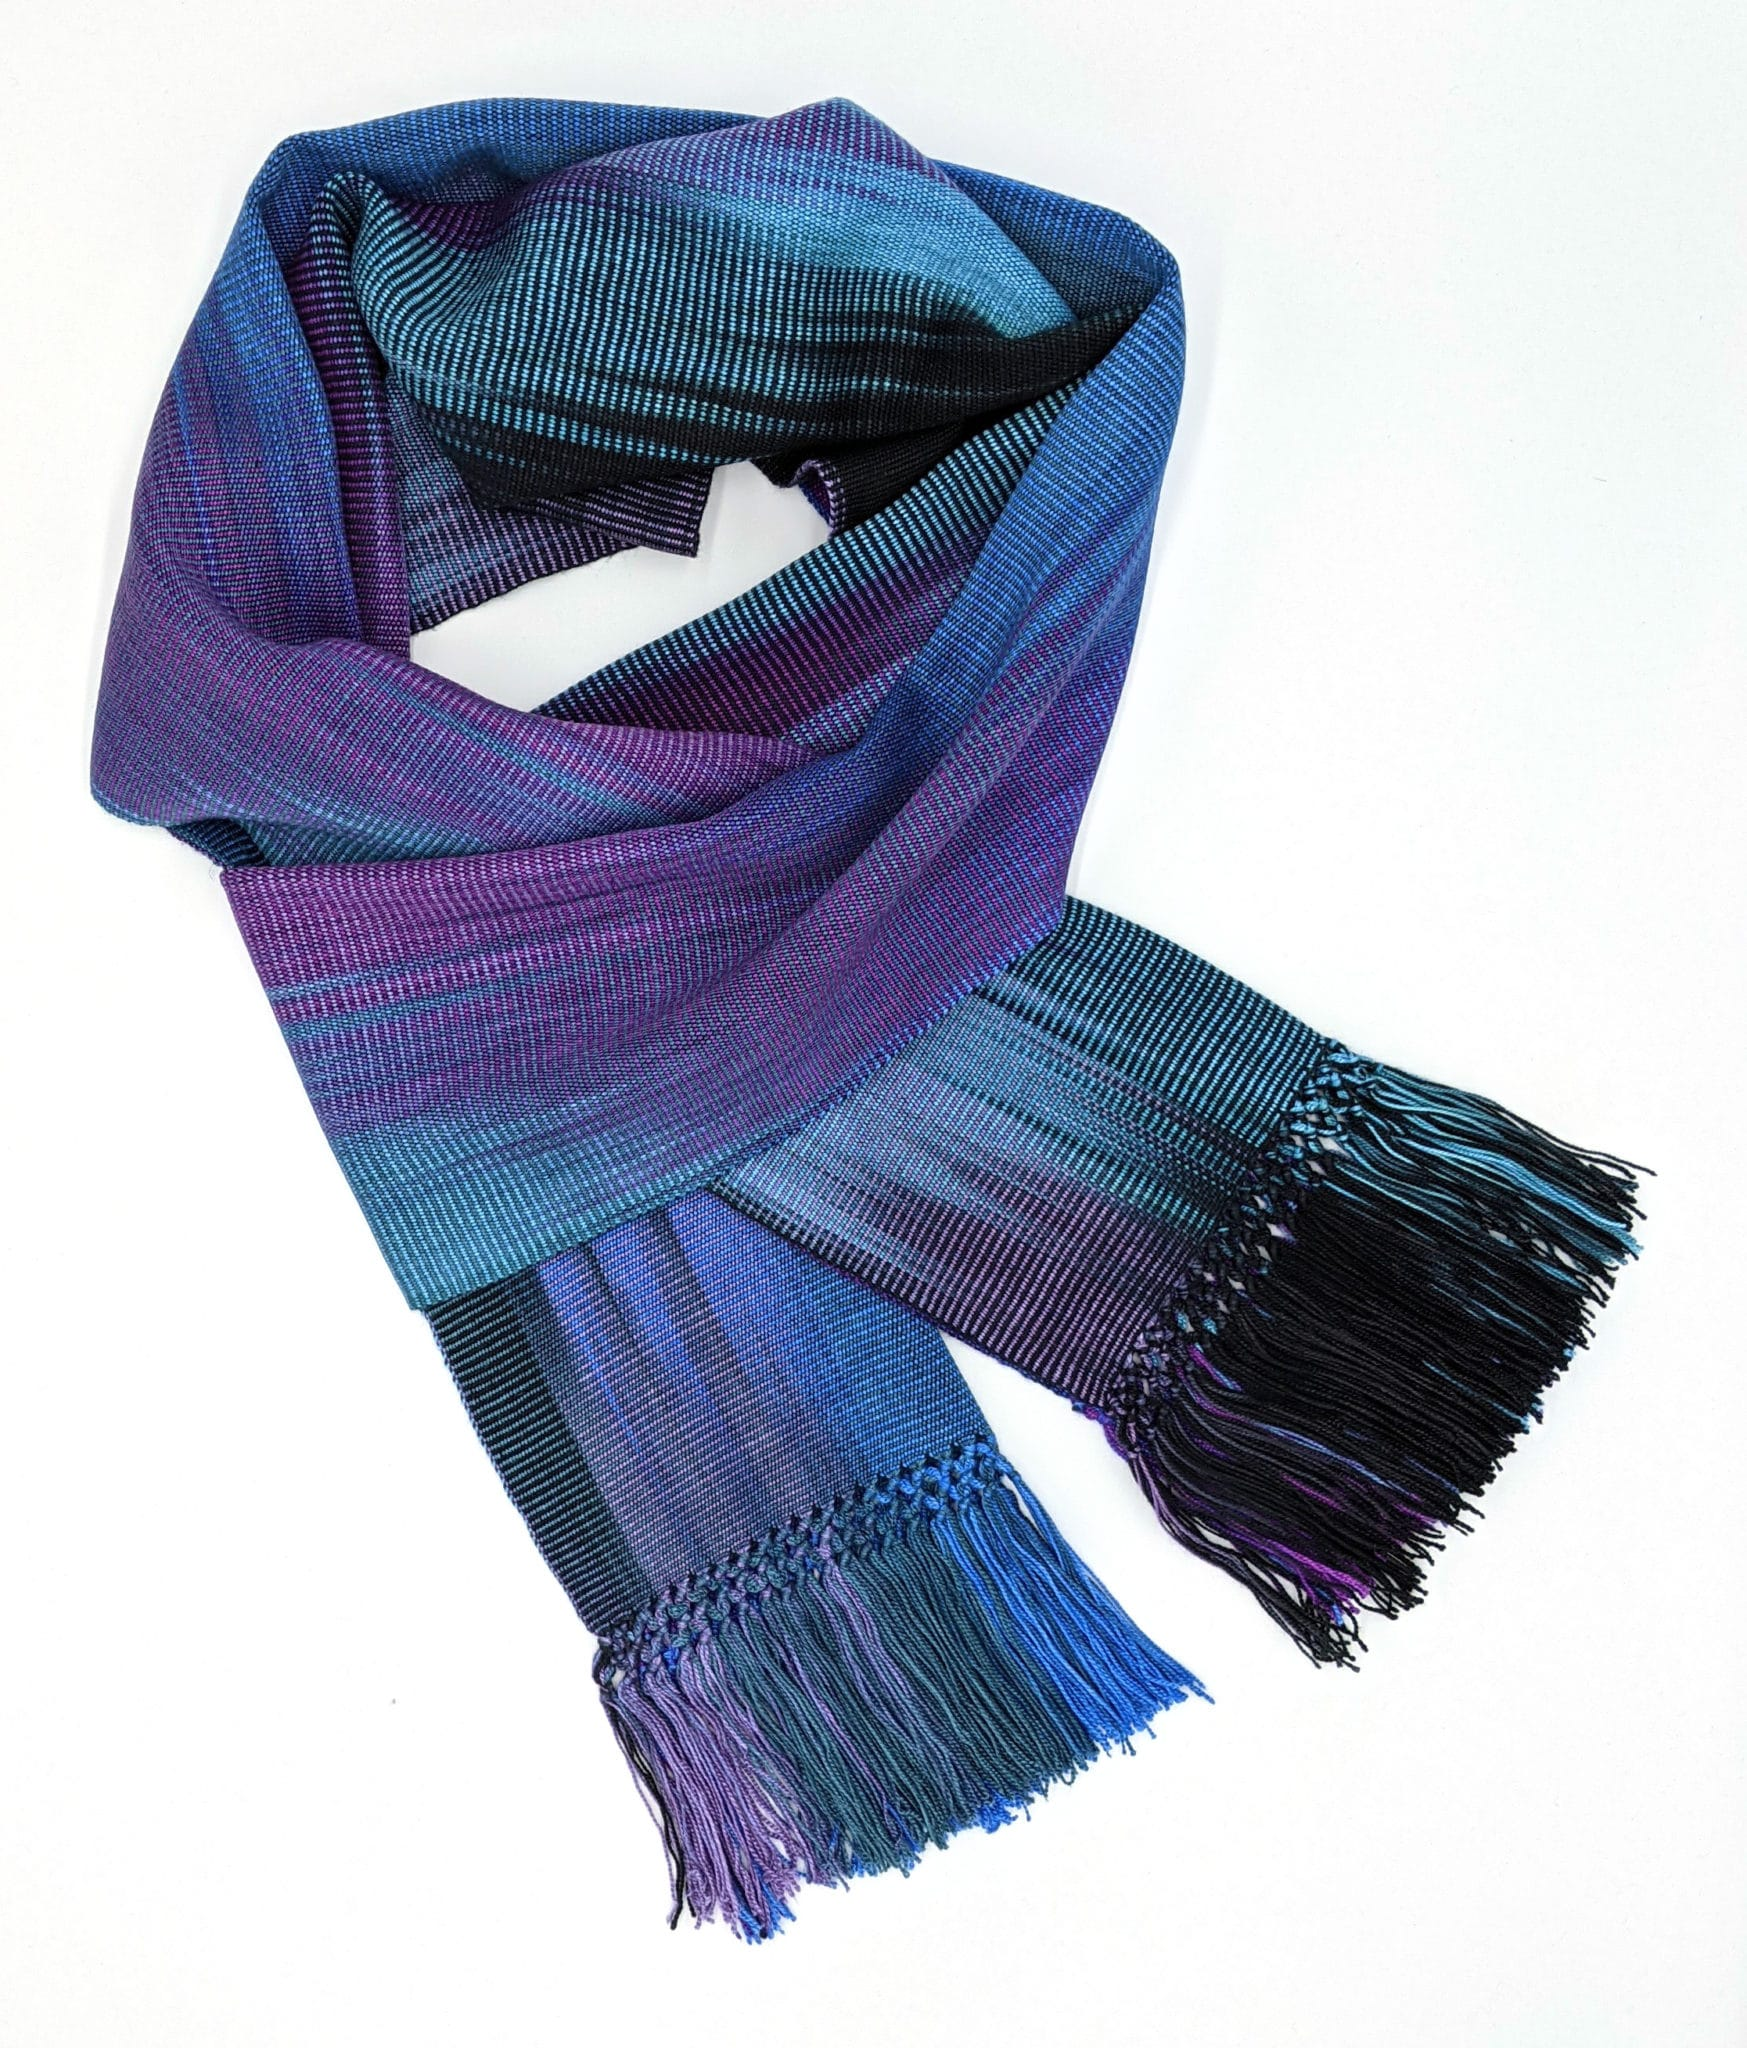 Blue, Teal, Black and Purple Lightweight Bamboo Handwoven Scarf 8 x 68